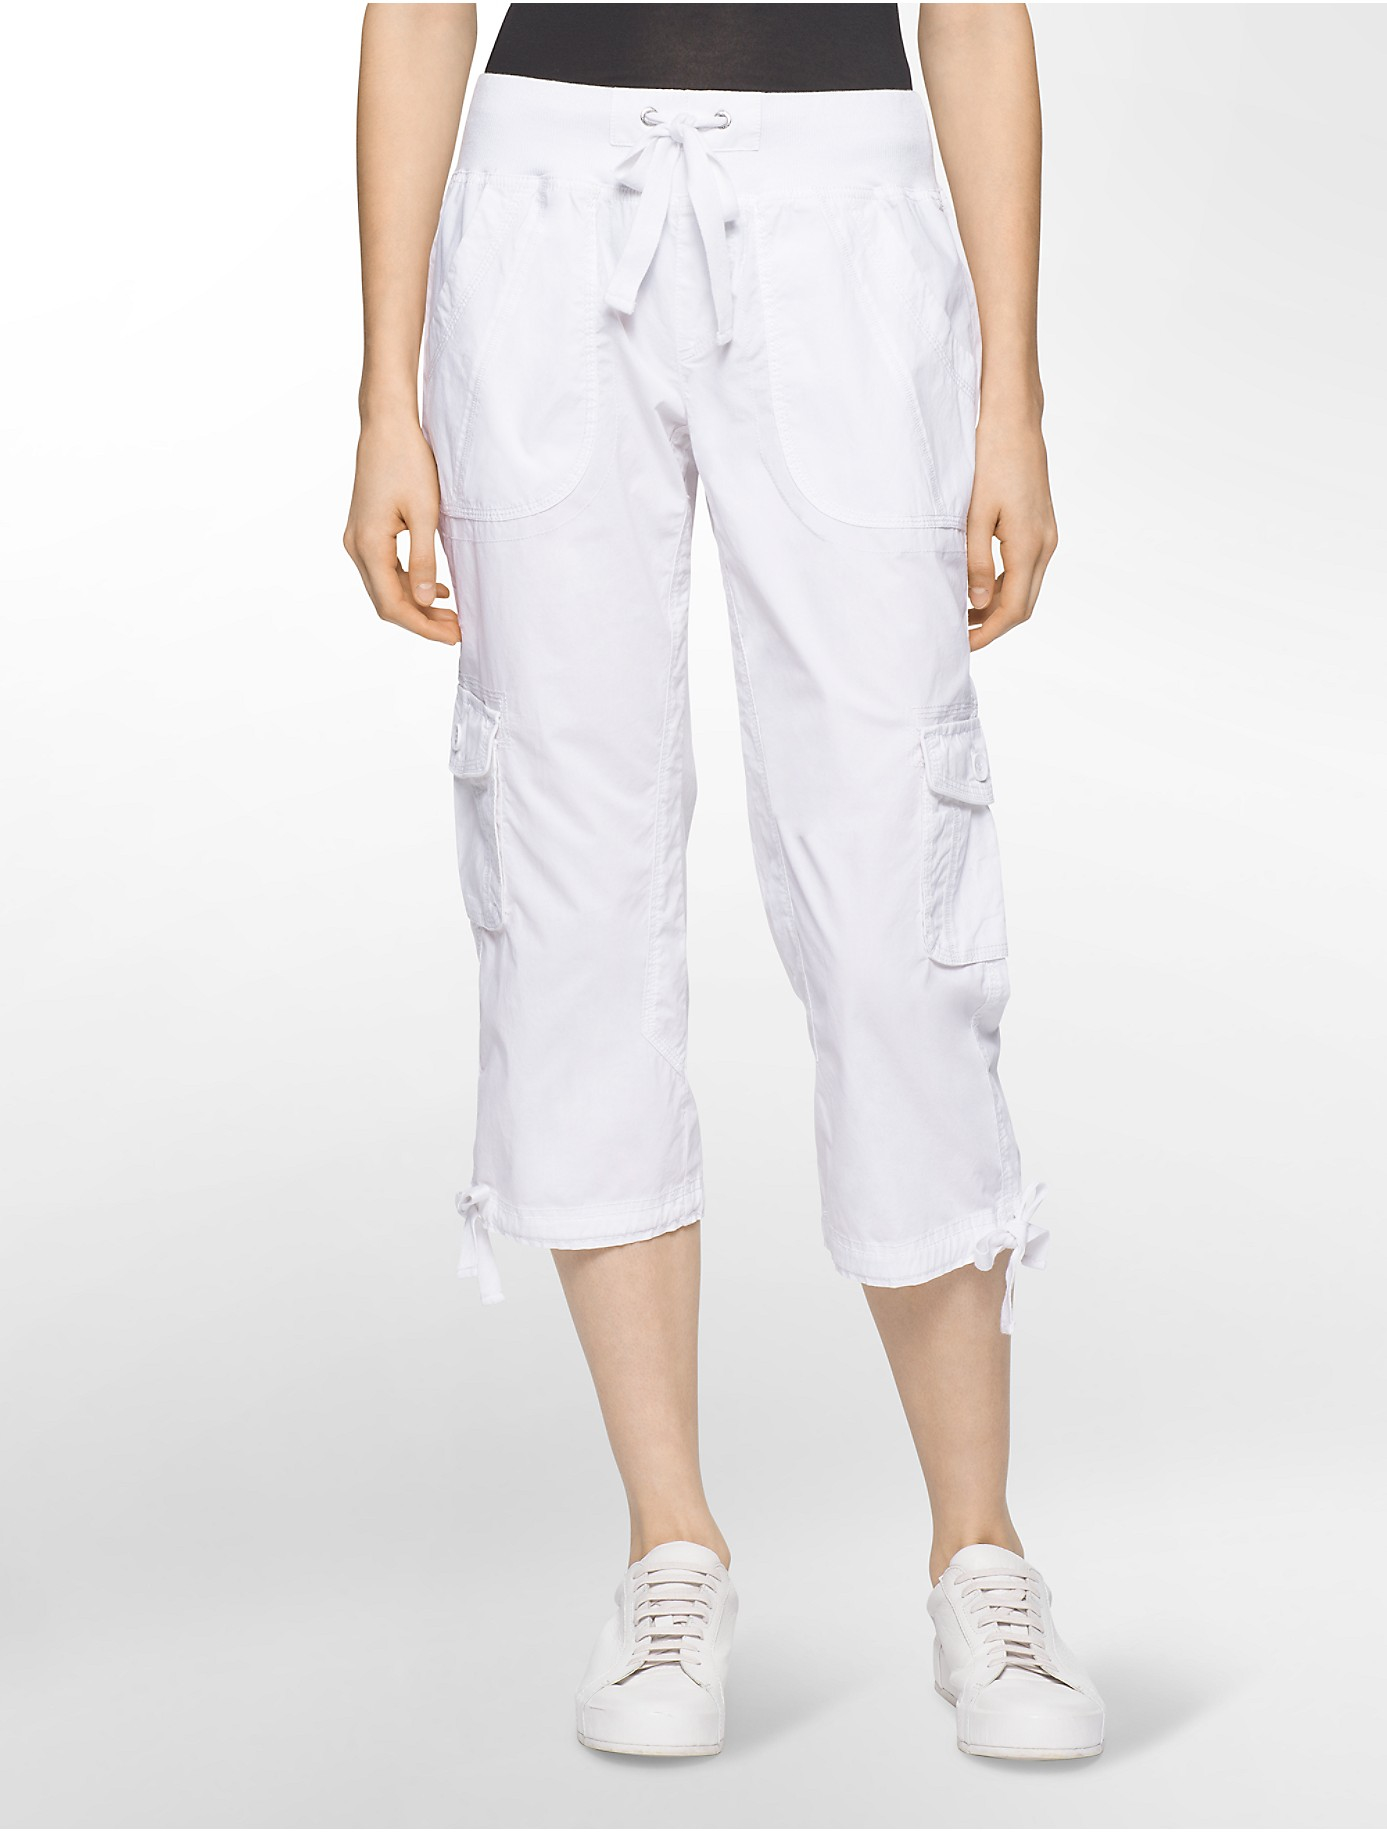 Calvin klein White Label Performance Cargo Capris in White | Lyst